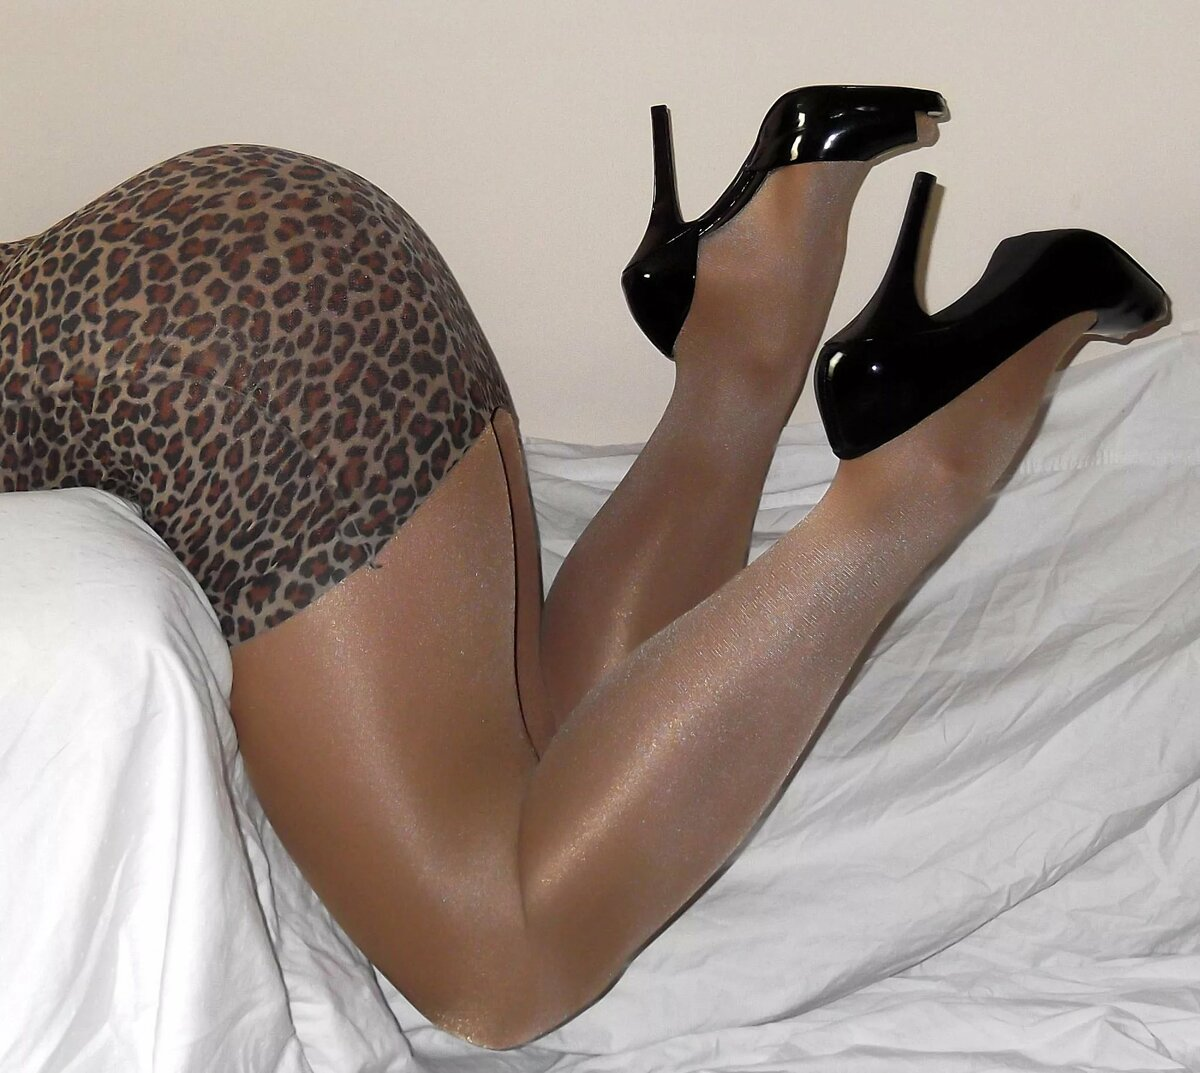 pantyhose-and-pad-pic